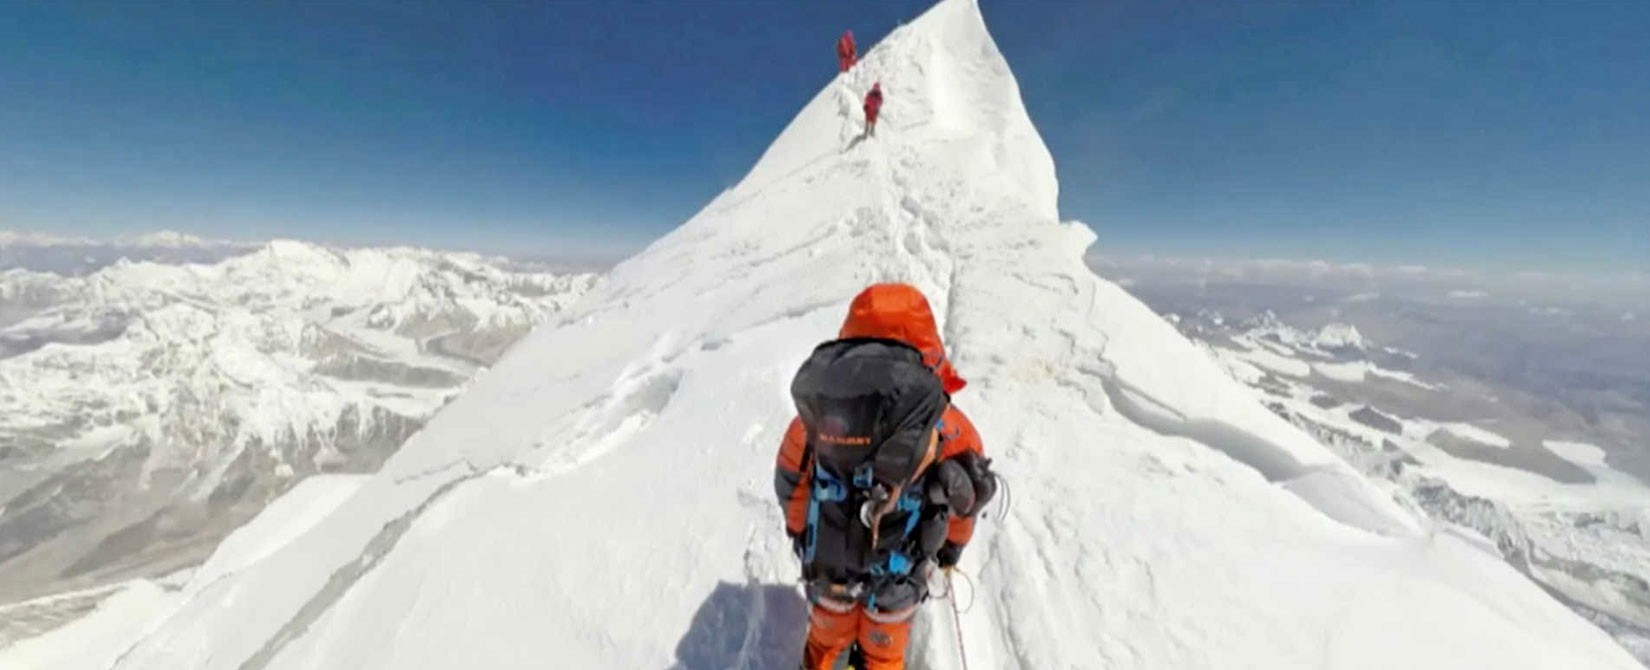 Fourth successful Summit to Mt. Everest